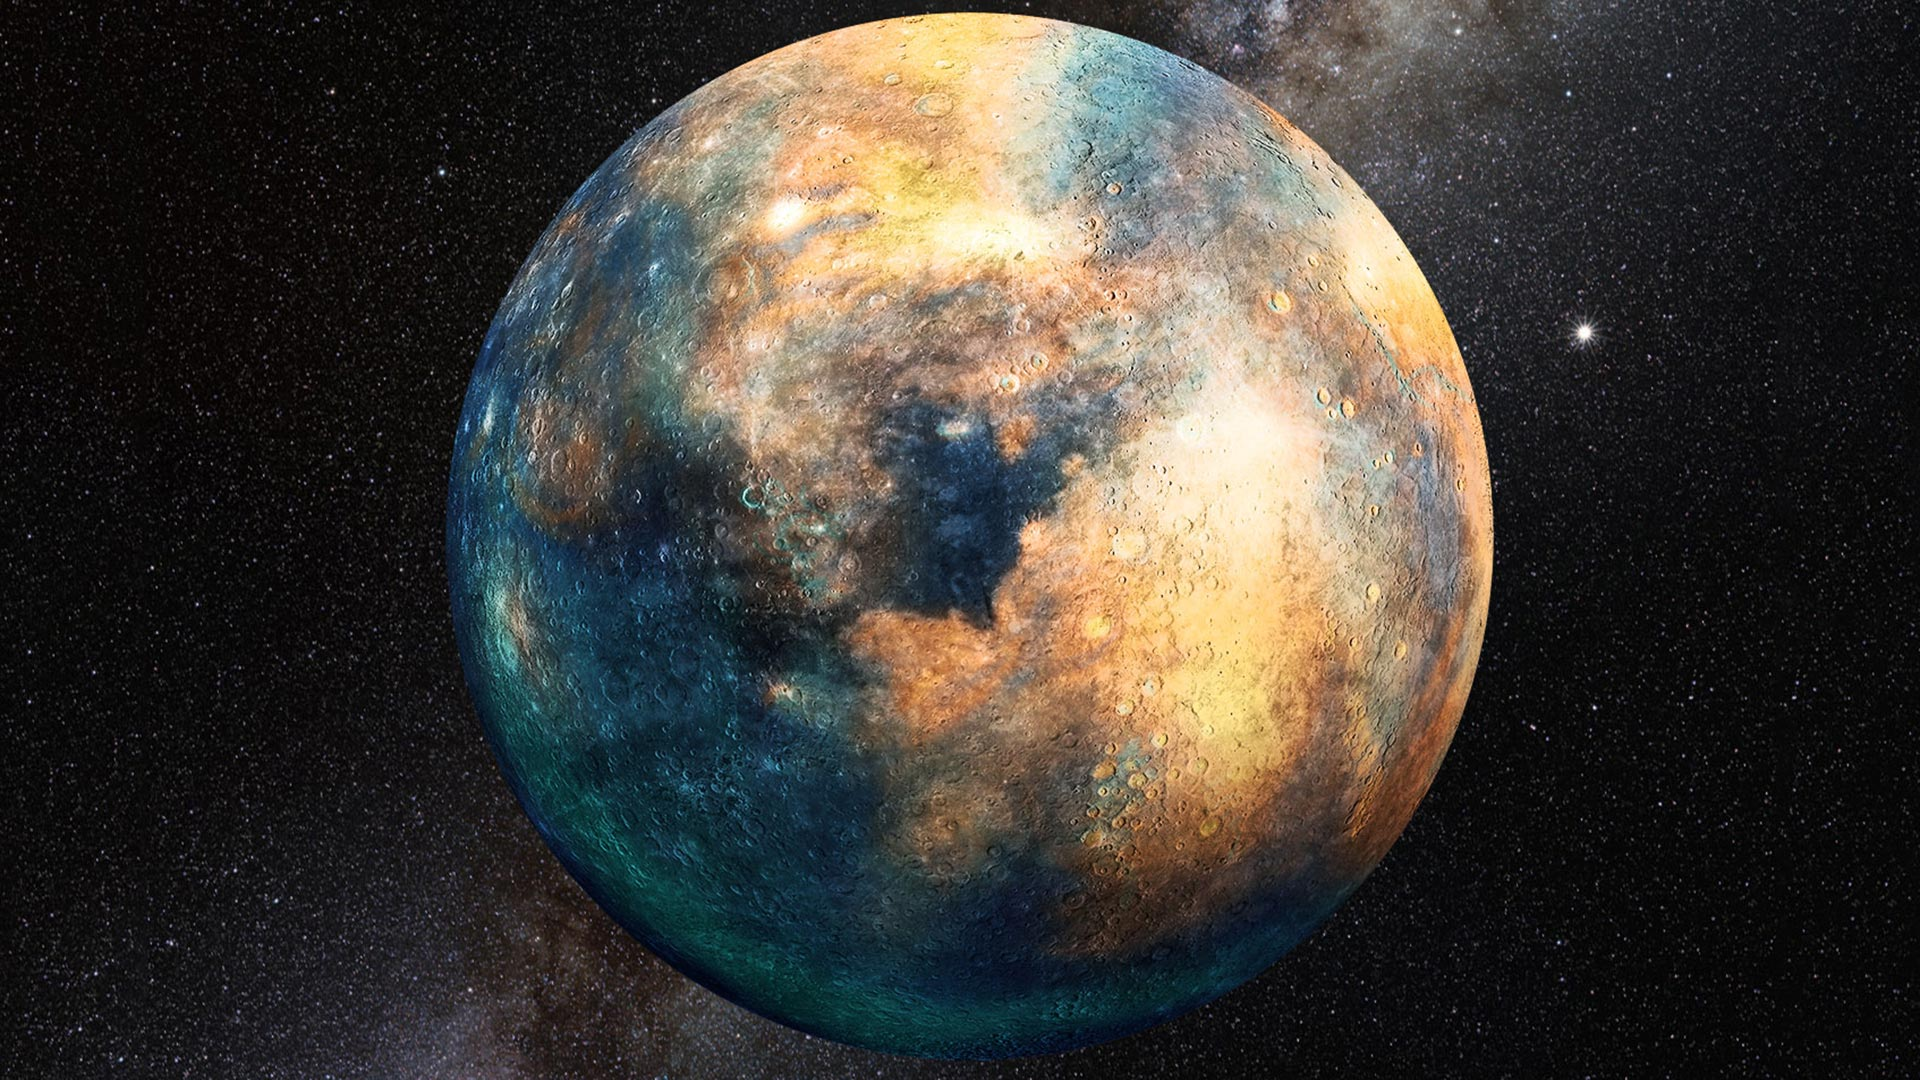 A planetary mass the size of Mars could be warping the orbits of some smaller objects beyond Neptune.